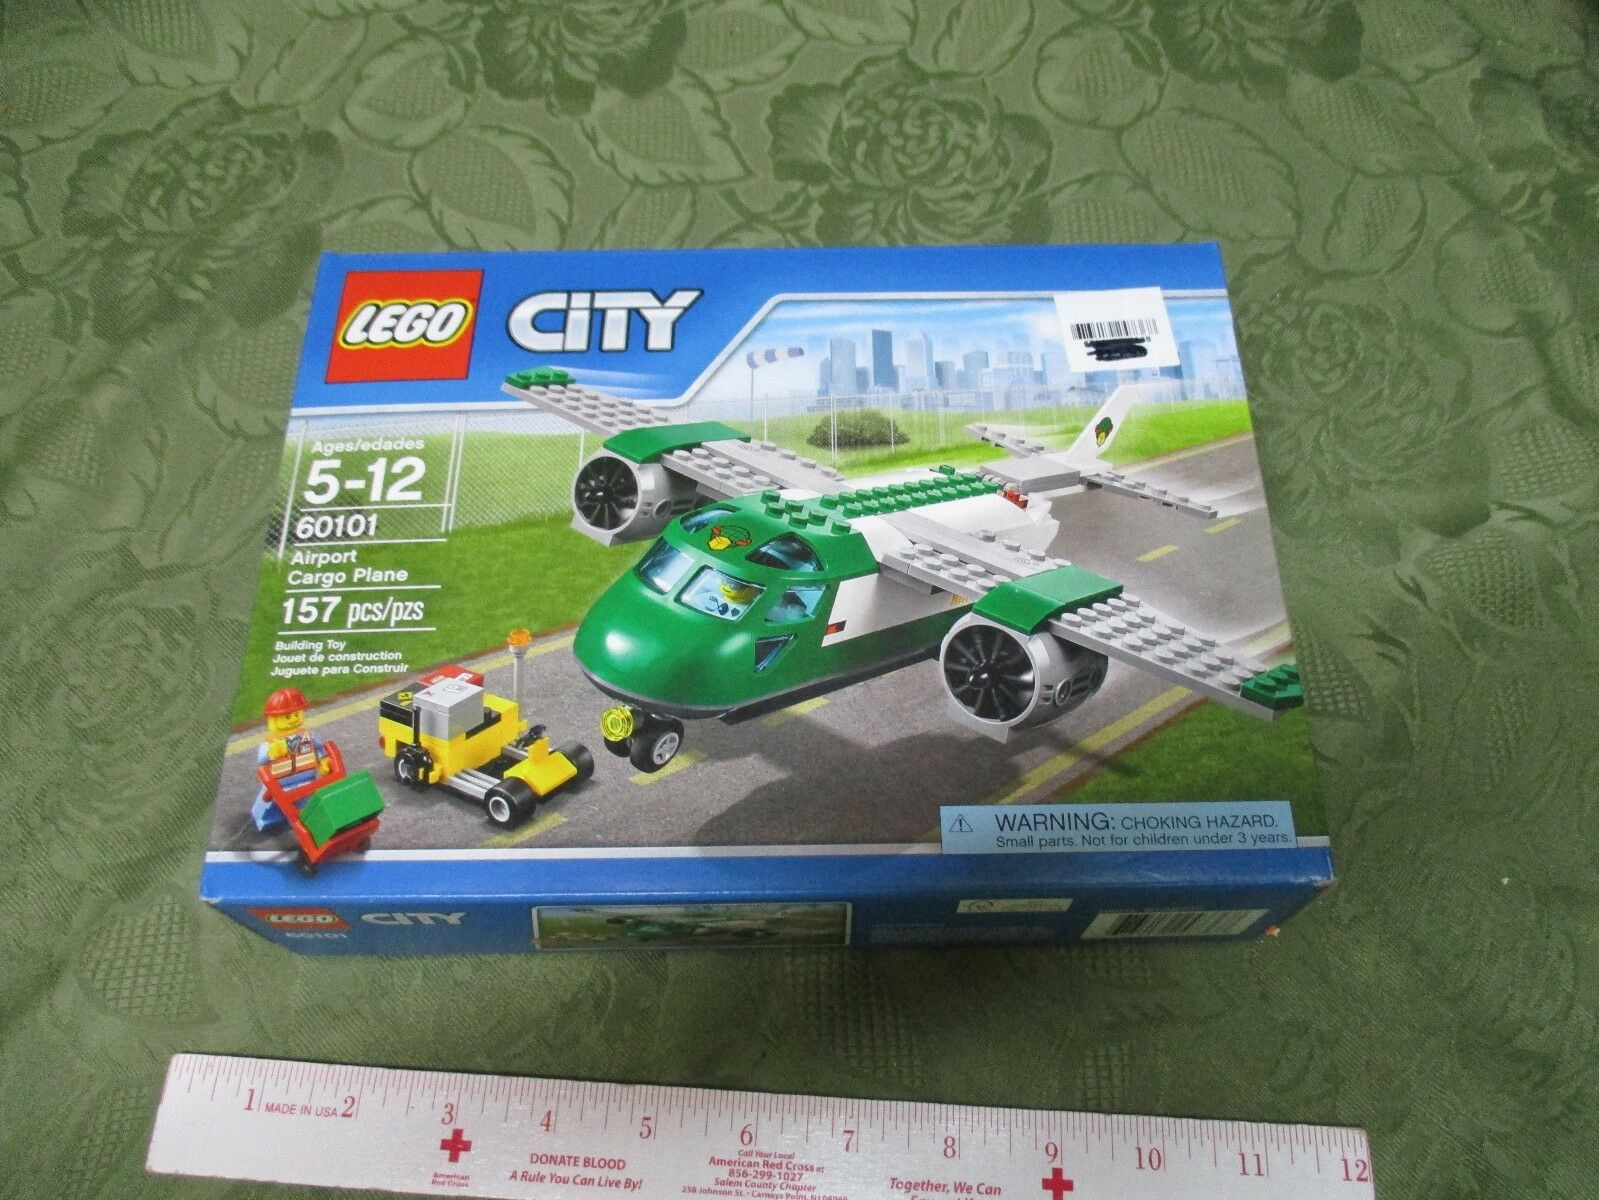 LEGO City Airport Cargo Plane Building toy set 157 Pieces Nuovo Box Worker minifig